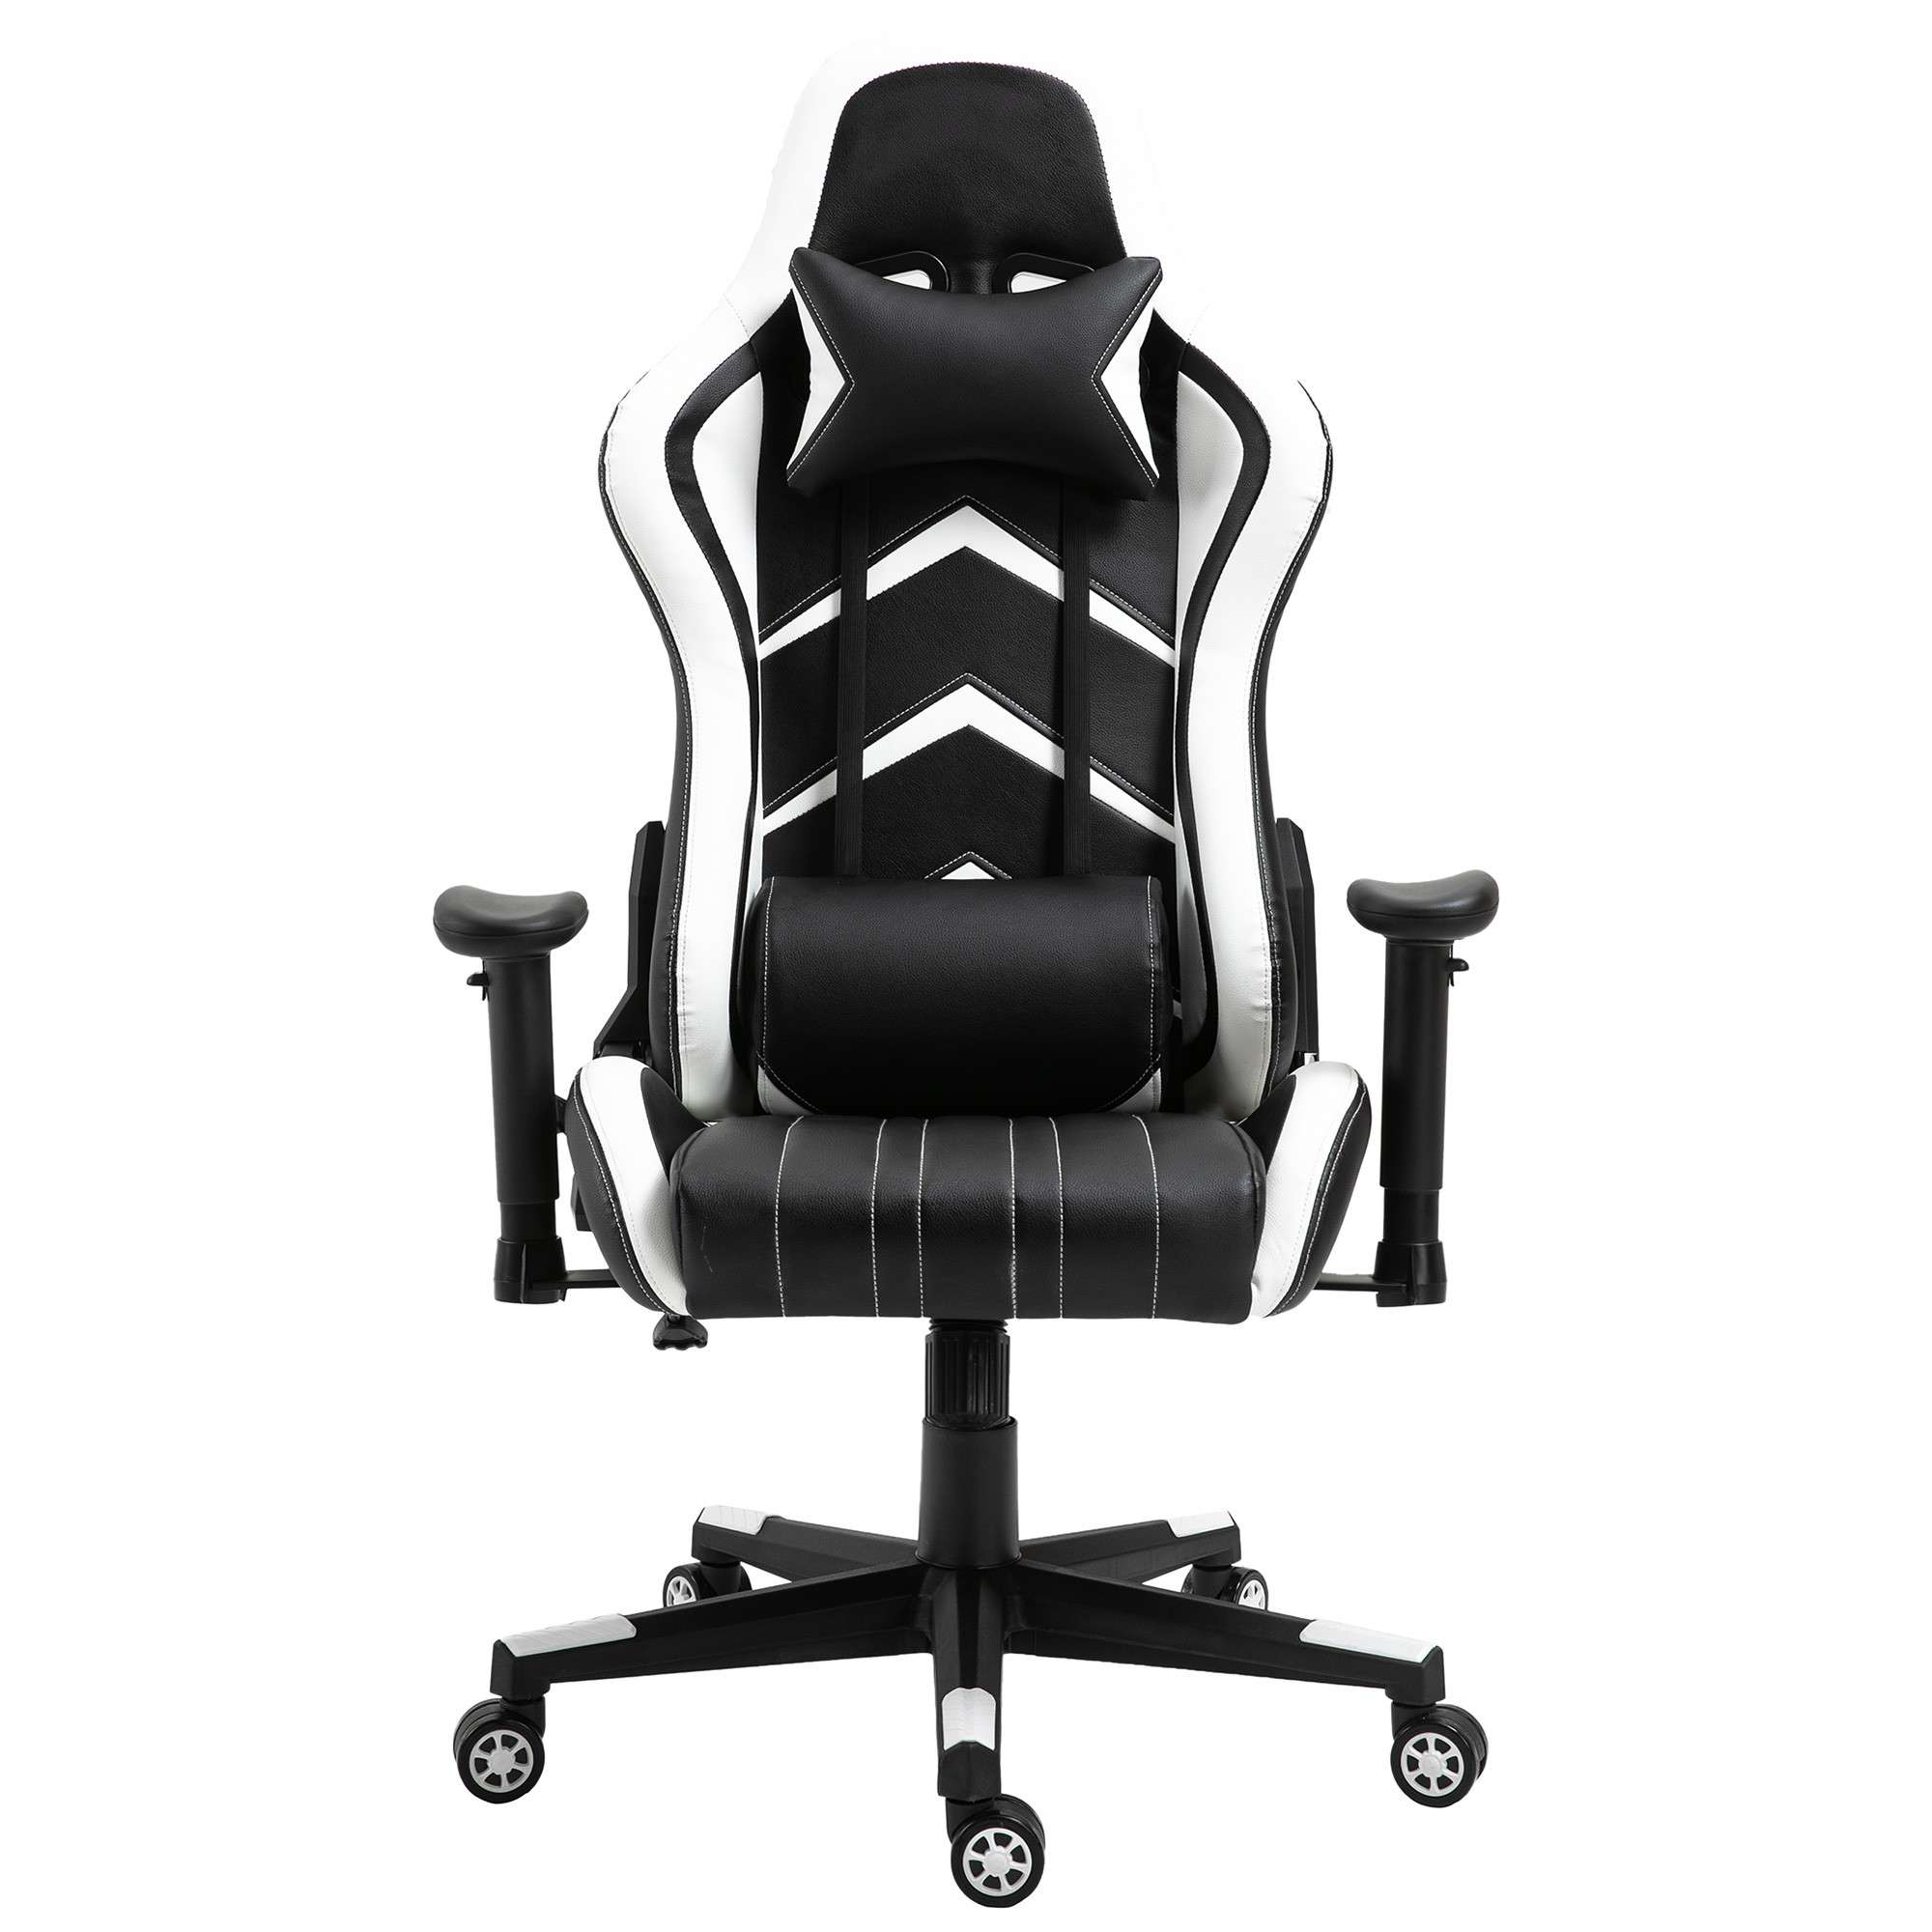 Cytron PU Leather Gaming Chair, Black / White